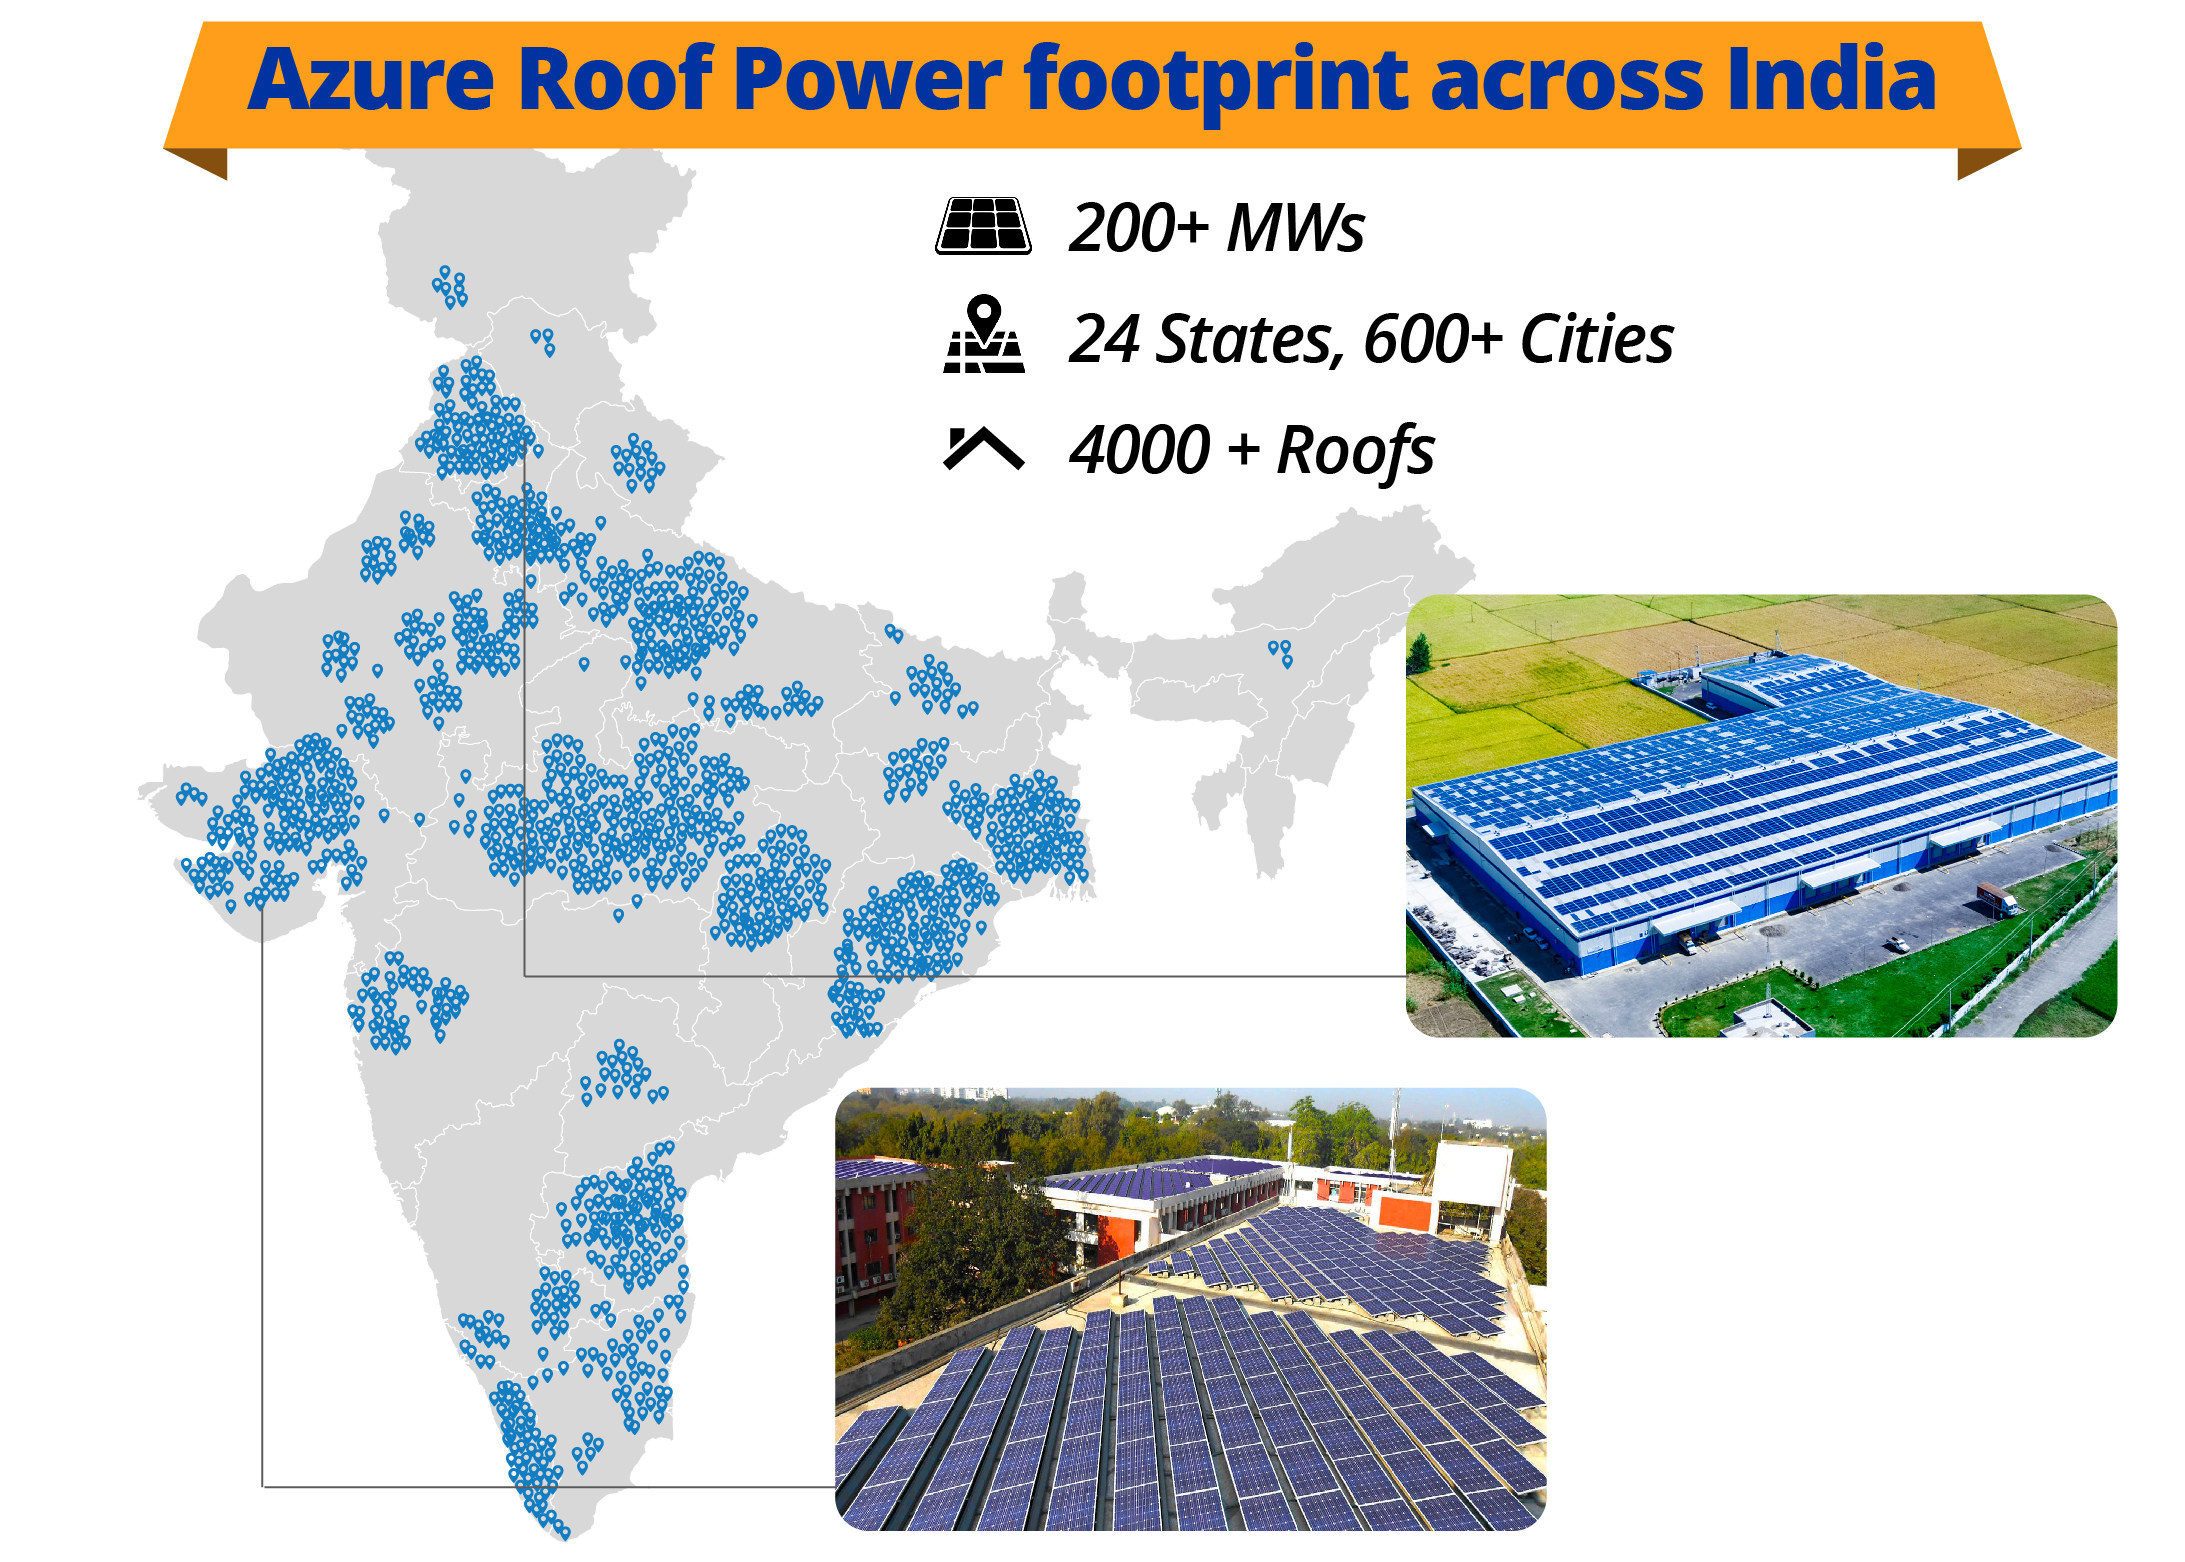 Azure Roof Power currently has solar assets spread across 24 states in India, and has developed business models in the PV rooftop sector that cover Public Private Partnership (PPP), Bilateral Power Sale and Intermediary Power Sale. Image: Azure Power